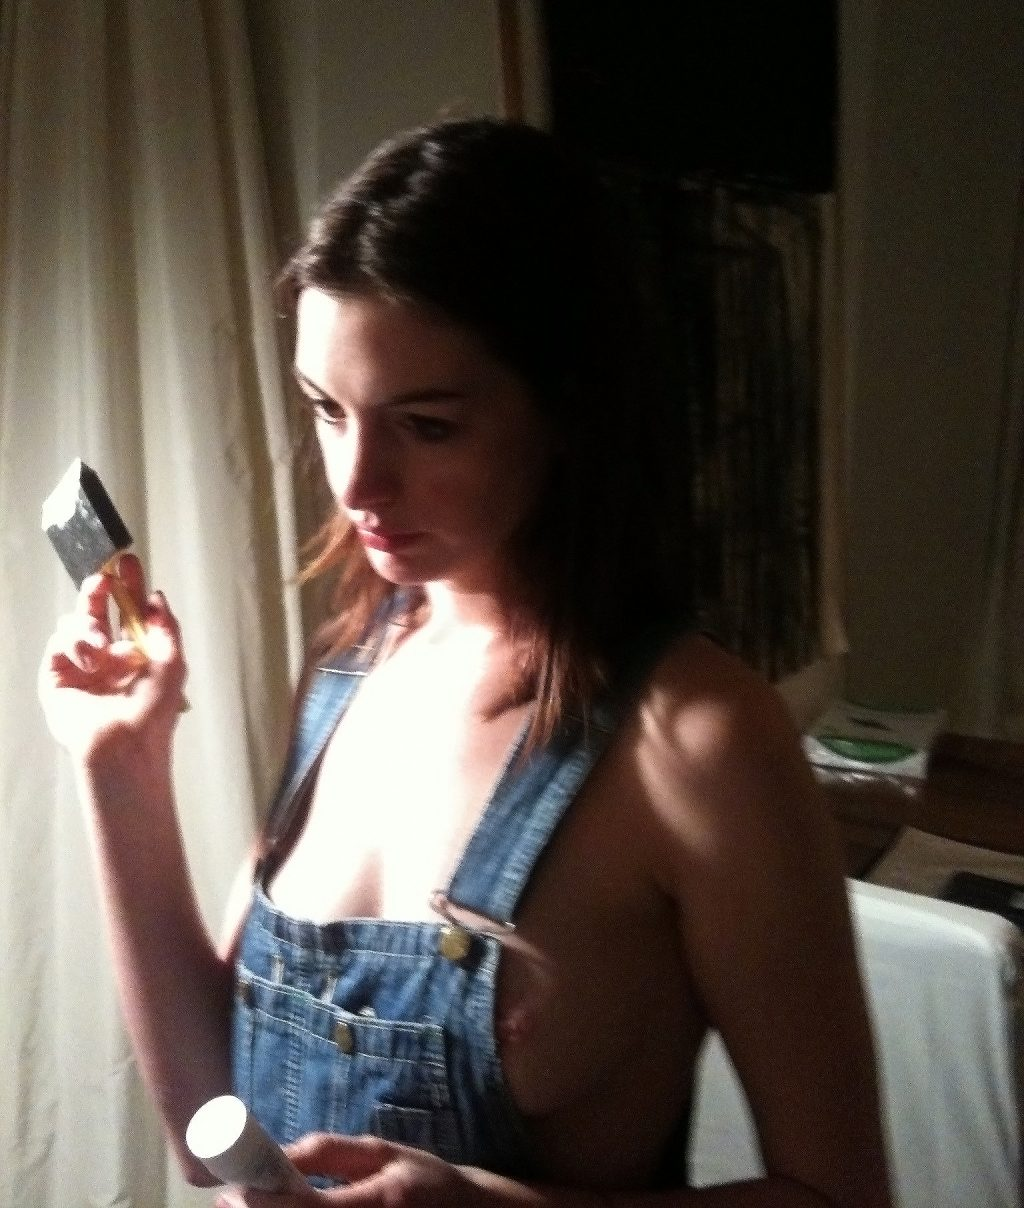 Leaked Anne Hathaway Nude Pics From Private Icloud-6568